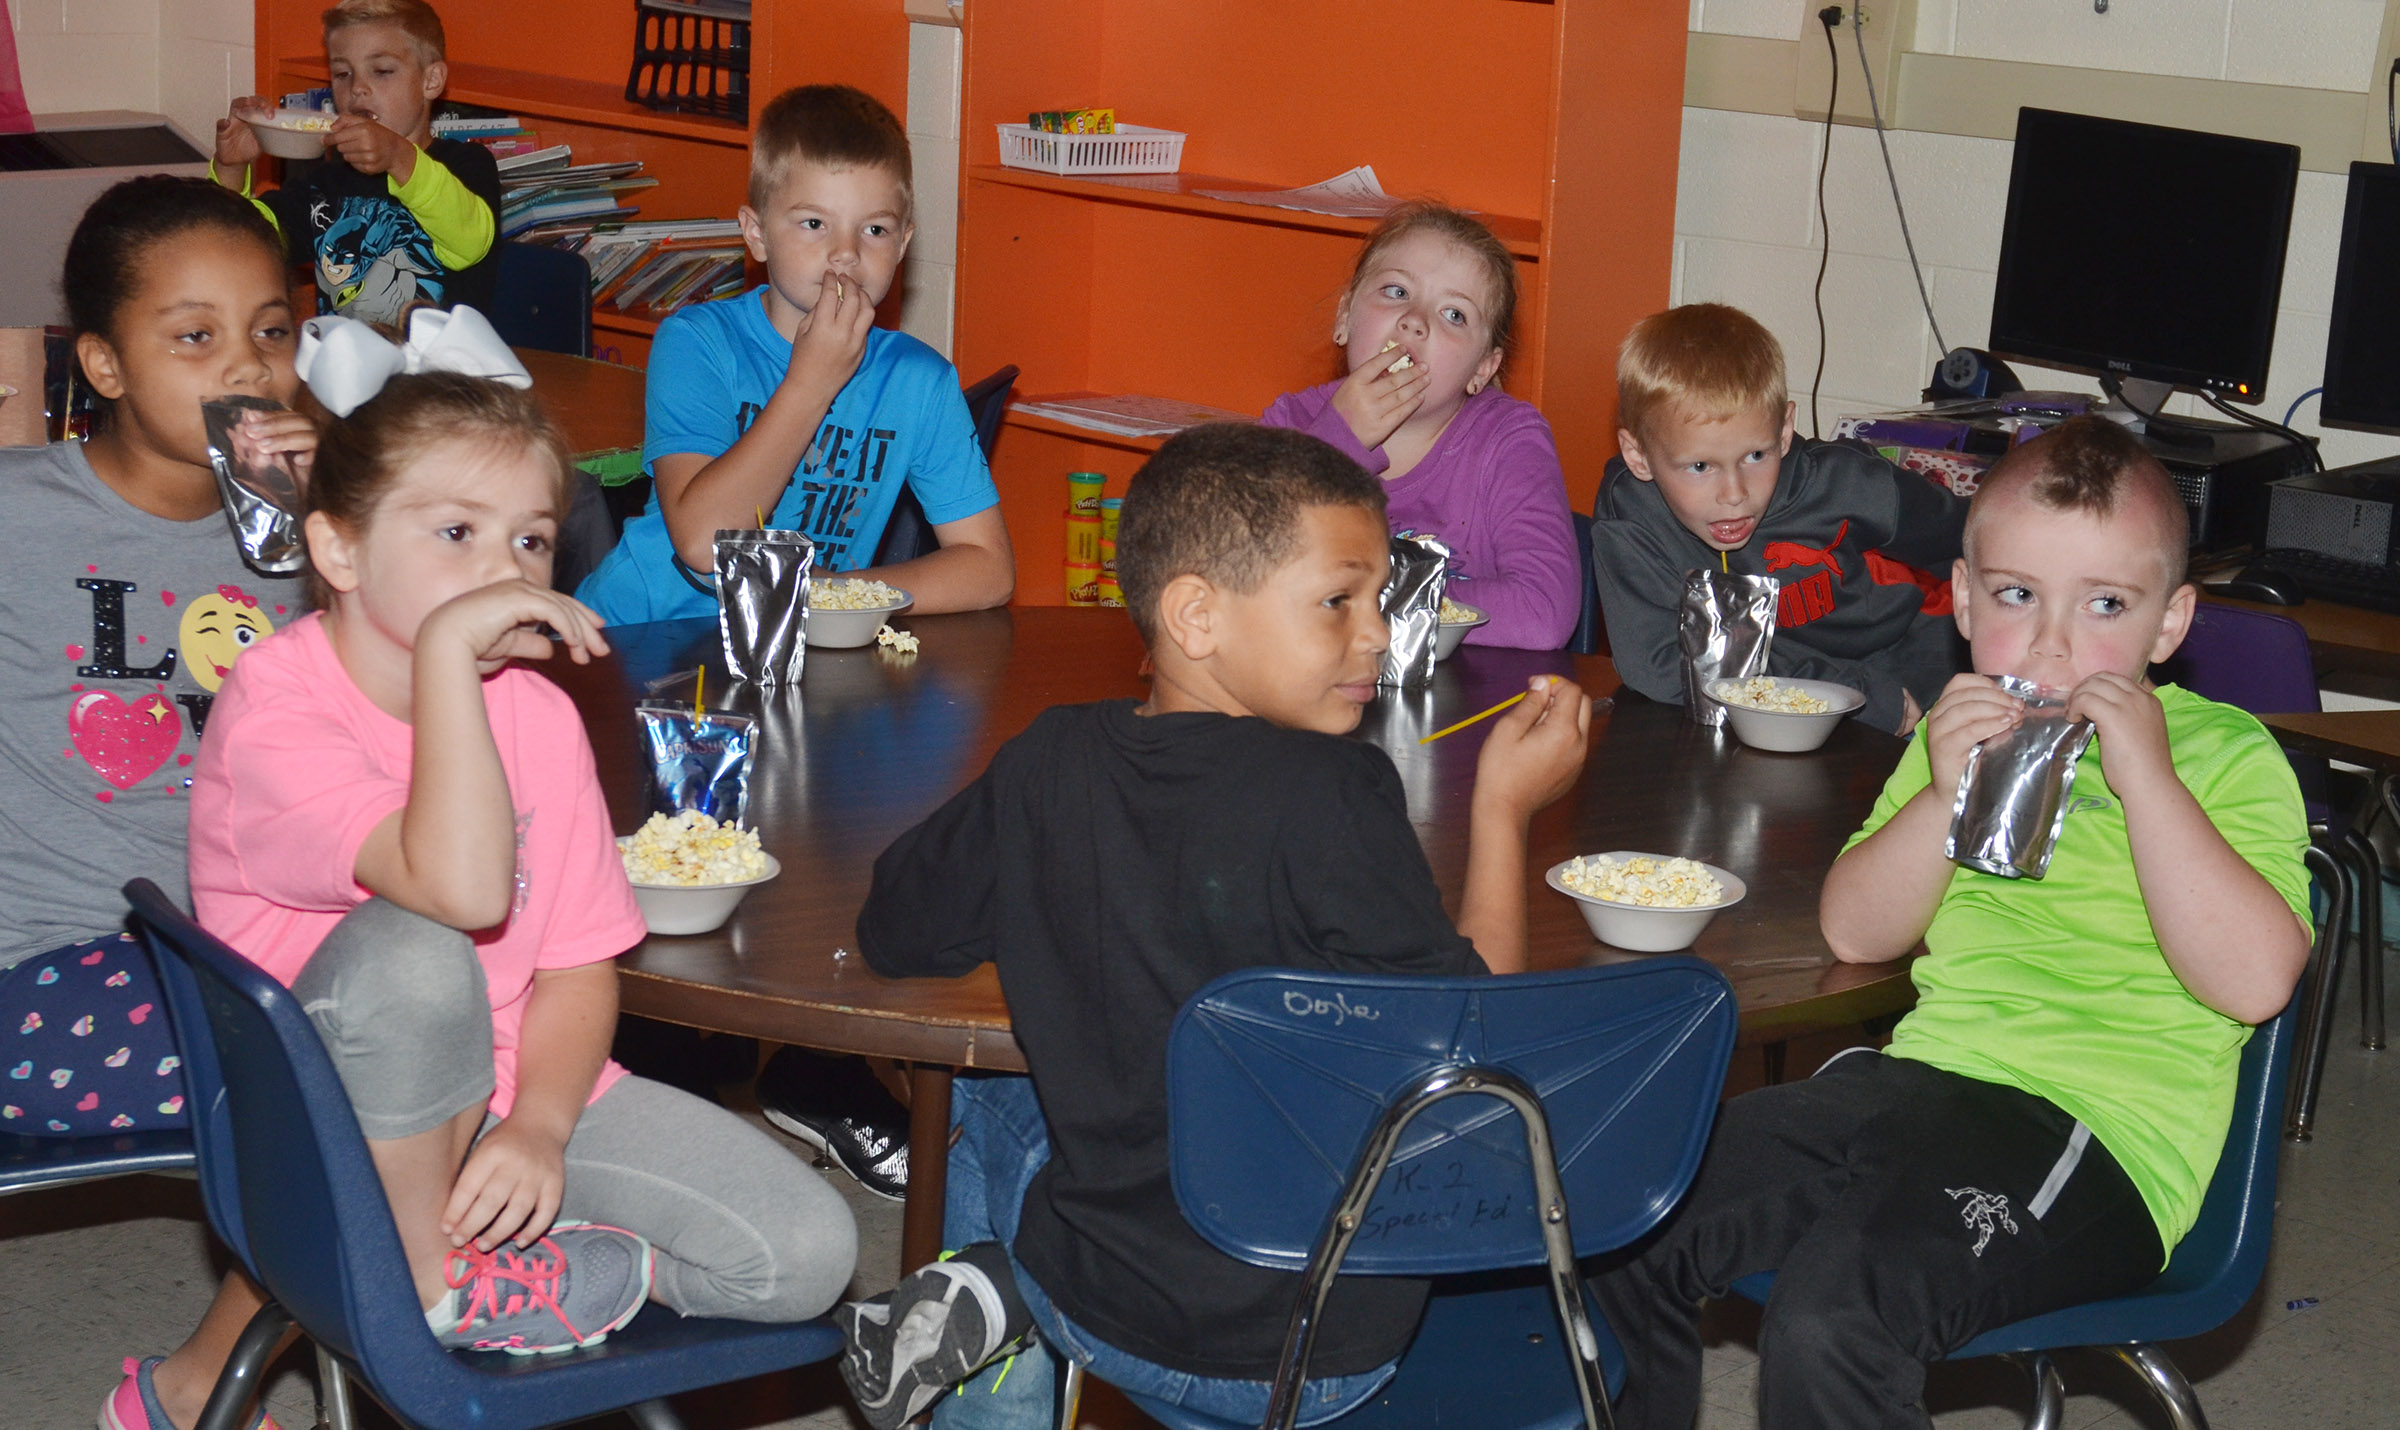 CES first-graders in Hailey Gregory's class enjoy their popcorn snack.